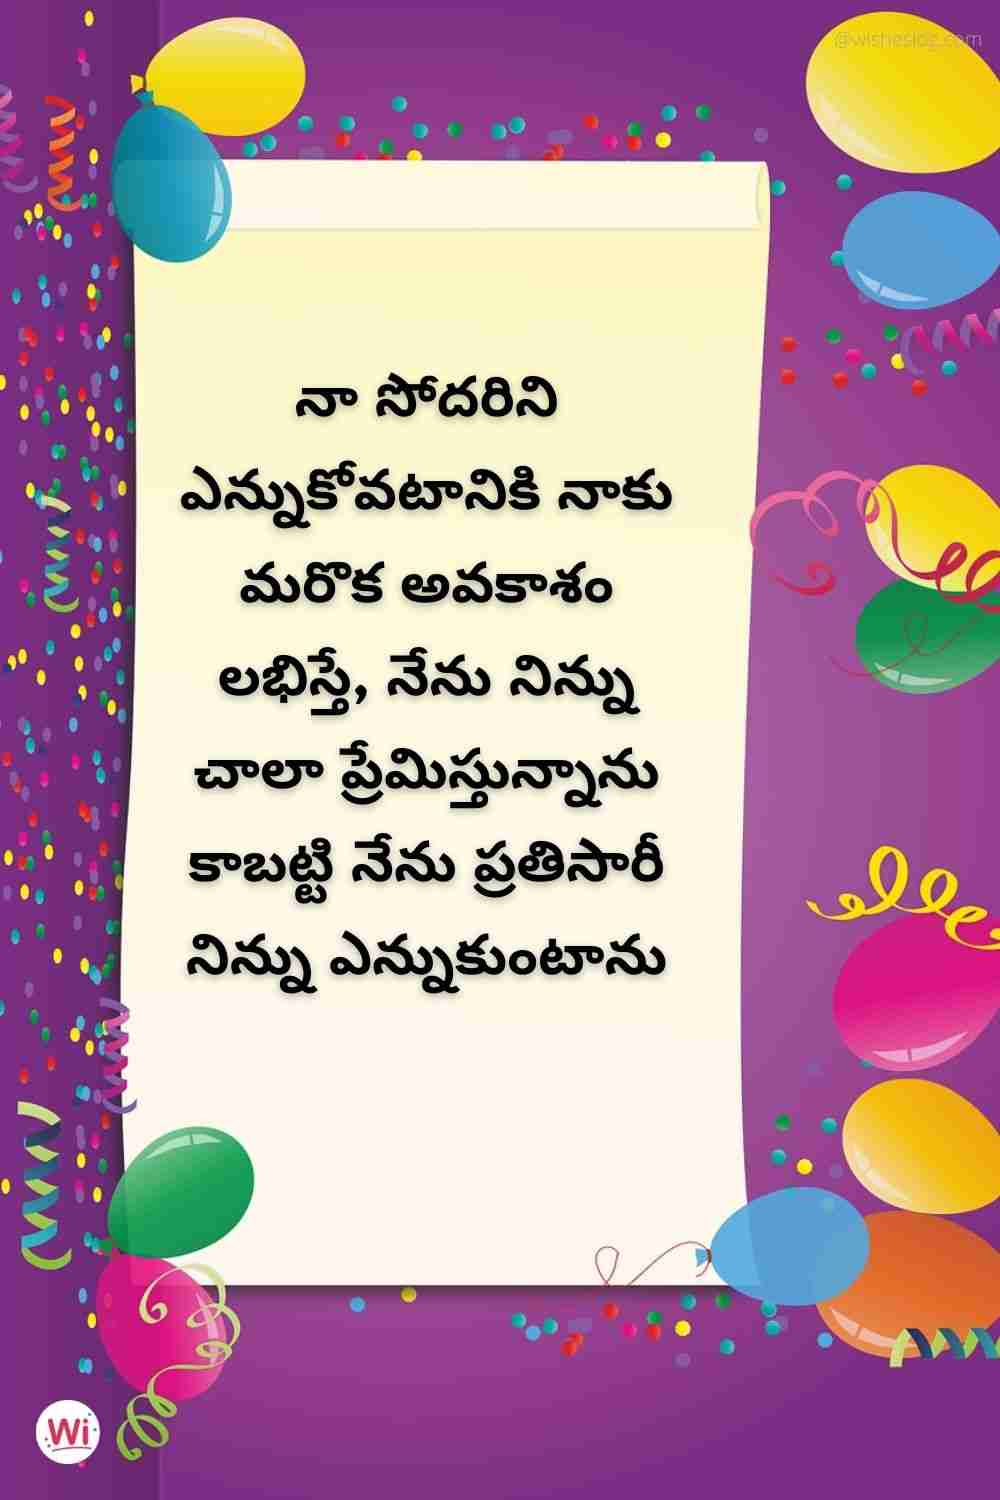 happy birthday wishes in telugu for sister